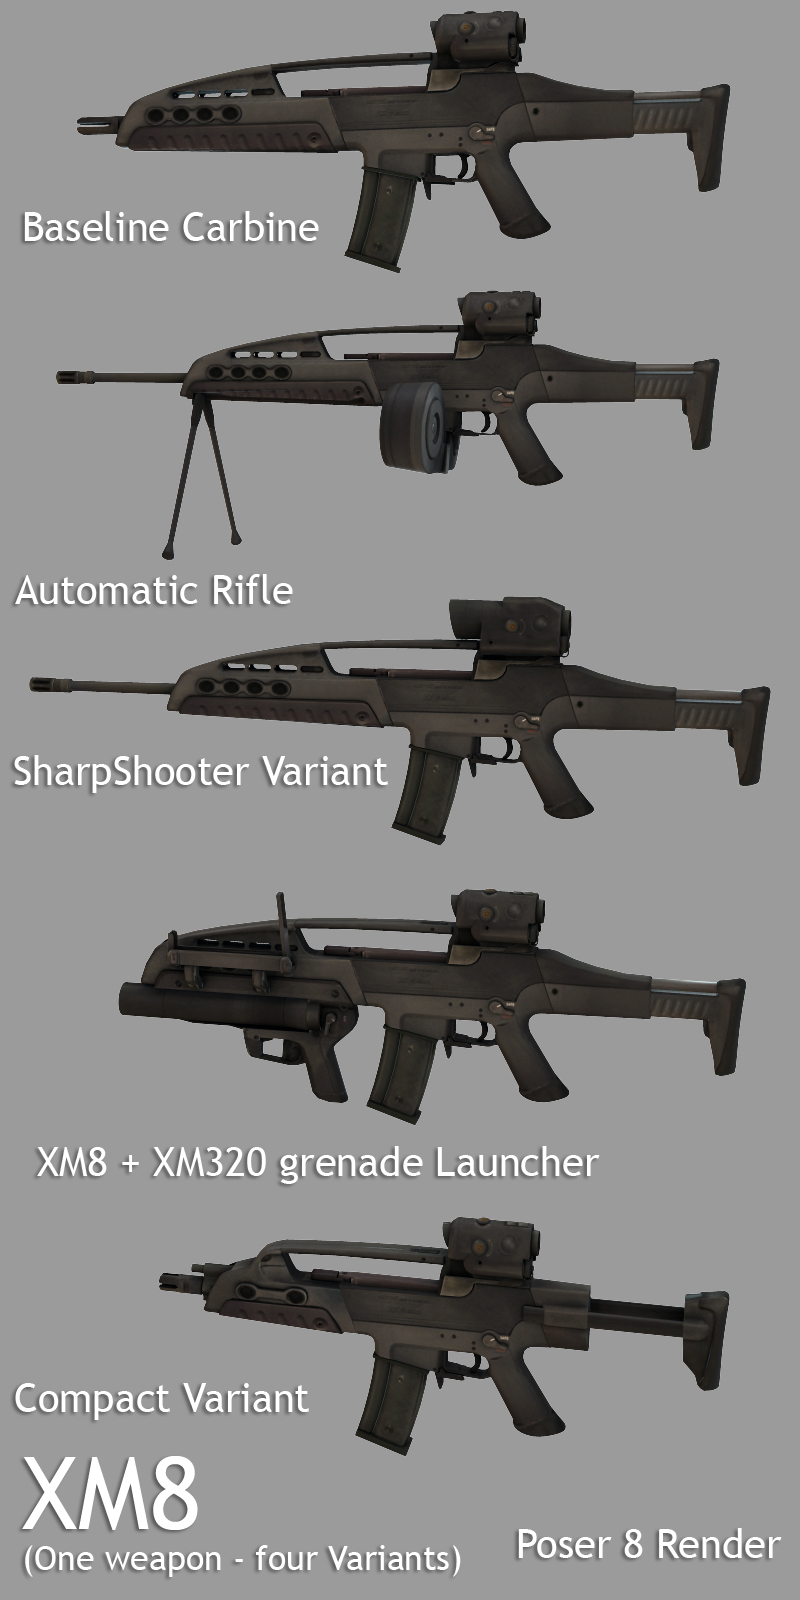 XM8 (One weapon - Four Variants) Themed Poser DAZ --WarTech--